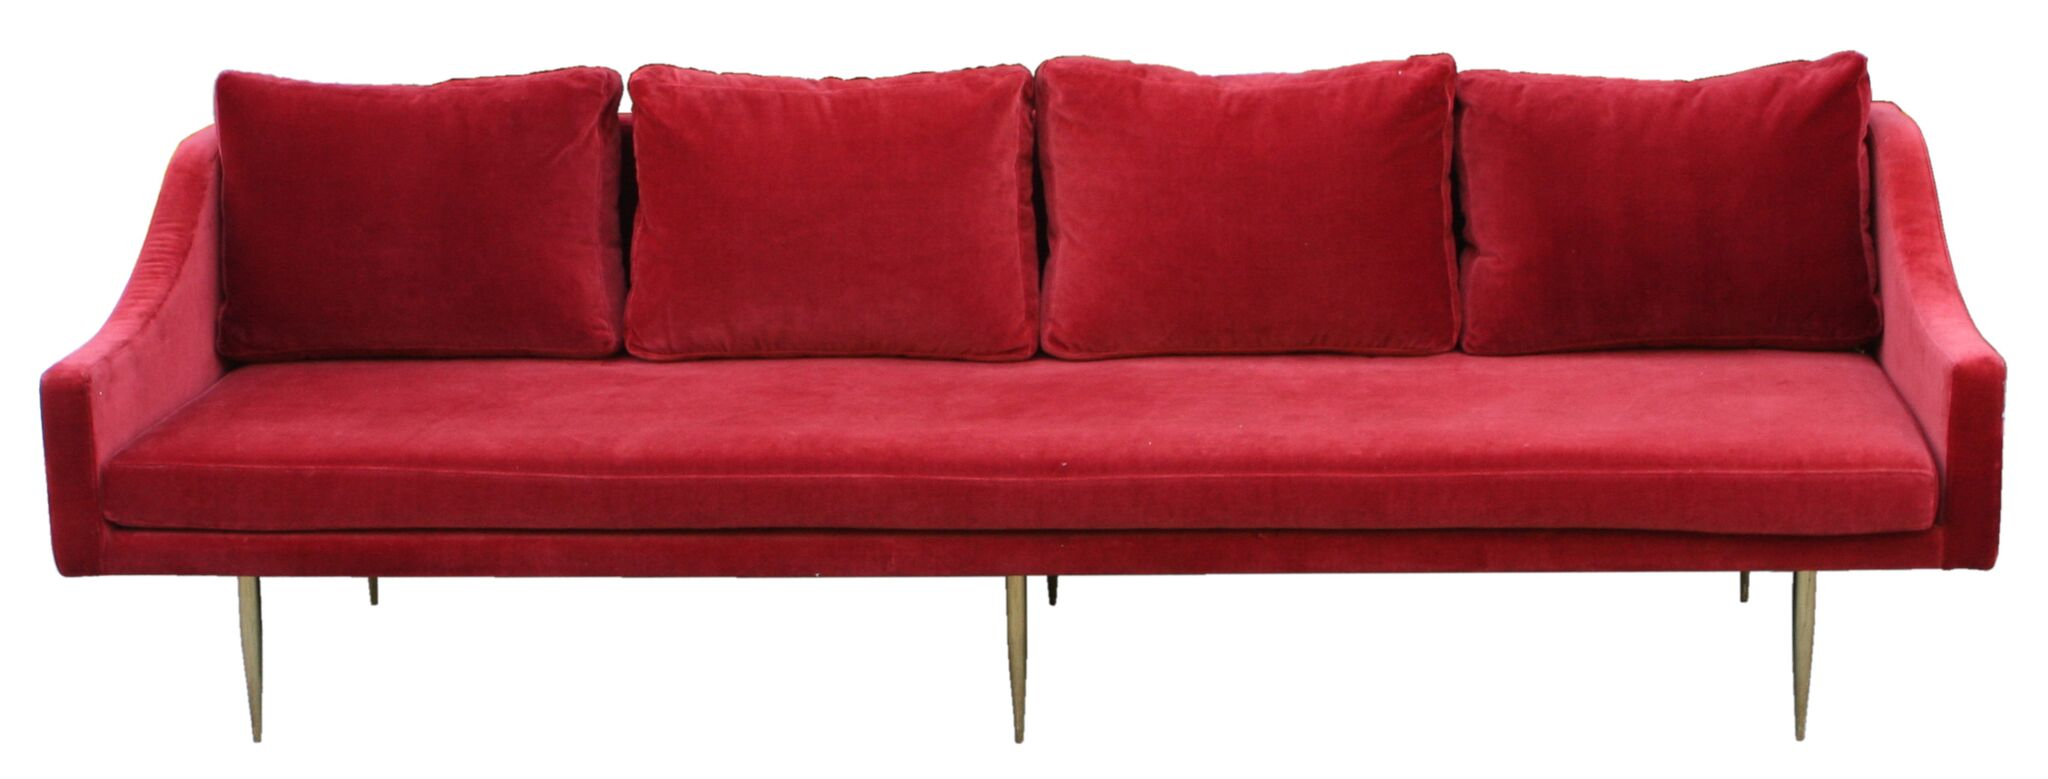 velvet couch wall photo big sofa red shutterstock stock on brick background image white